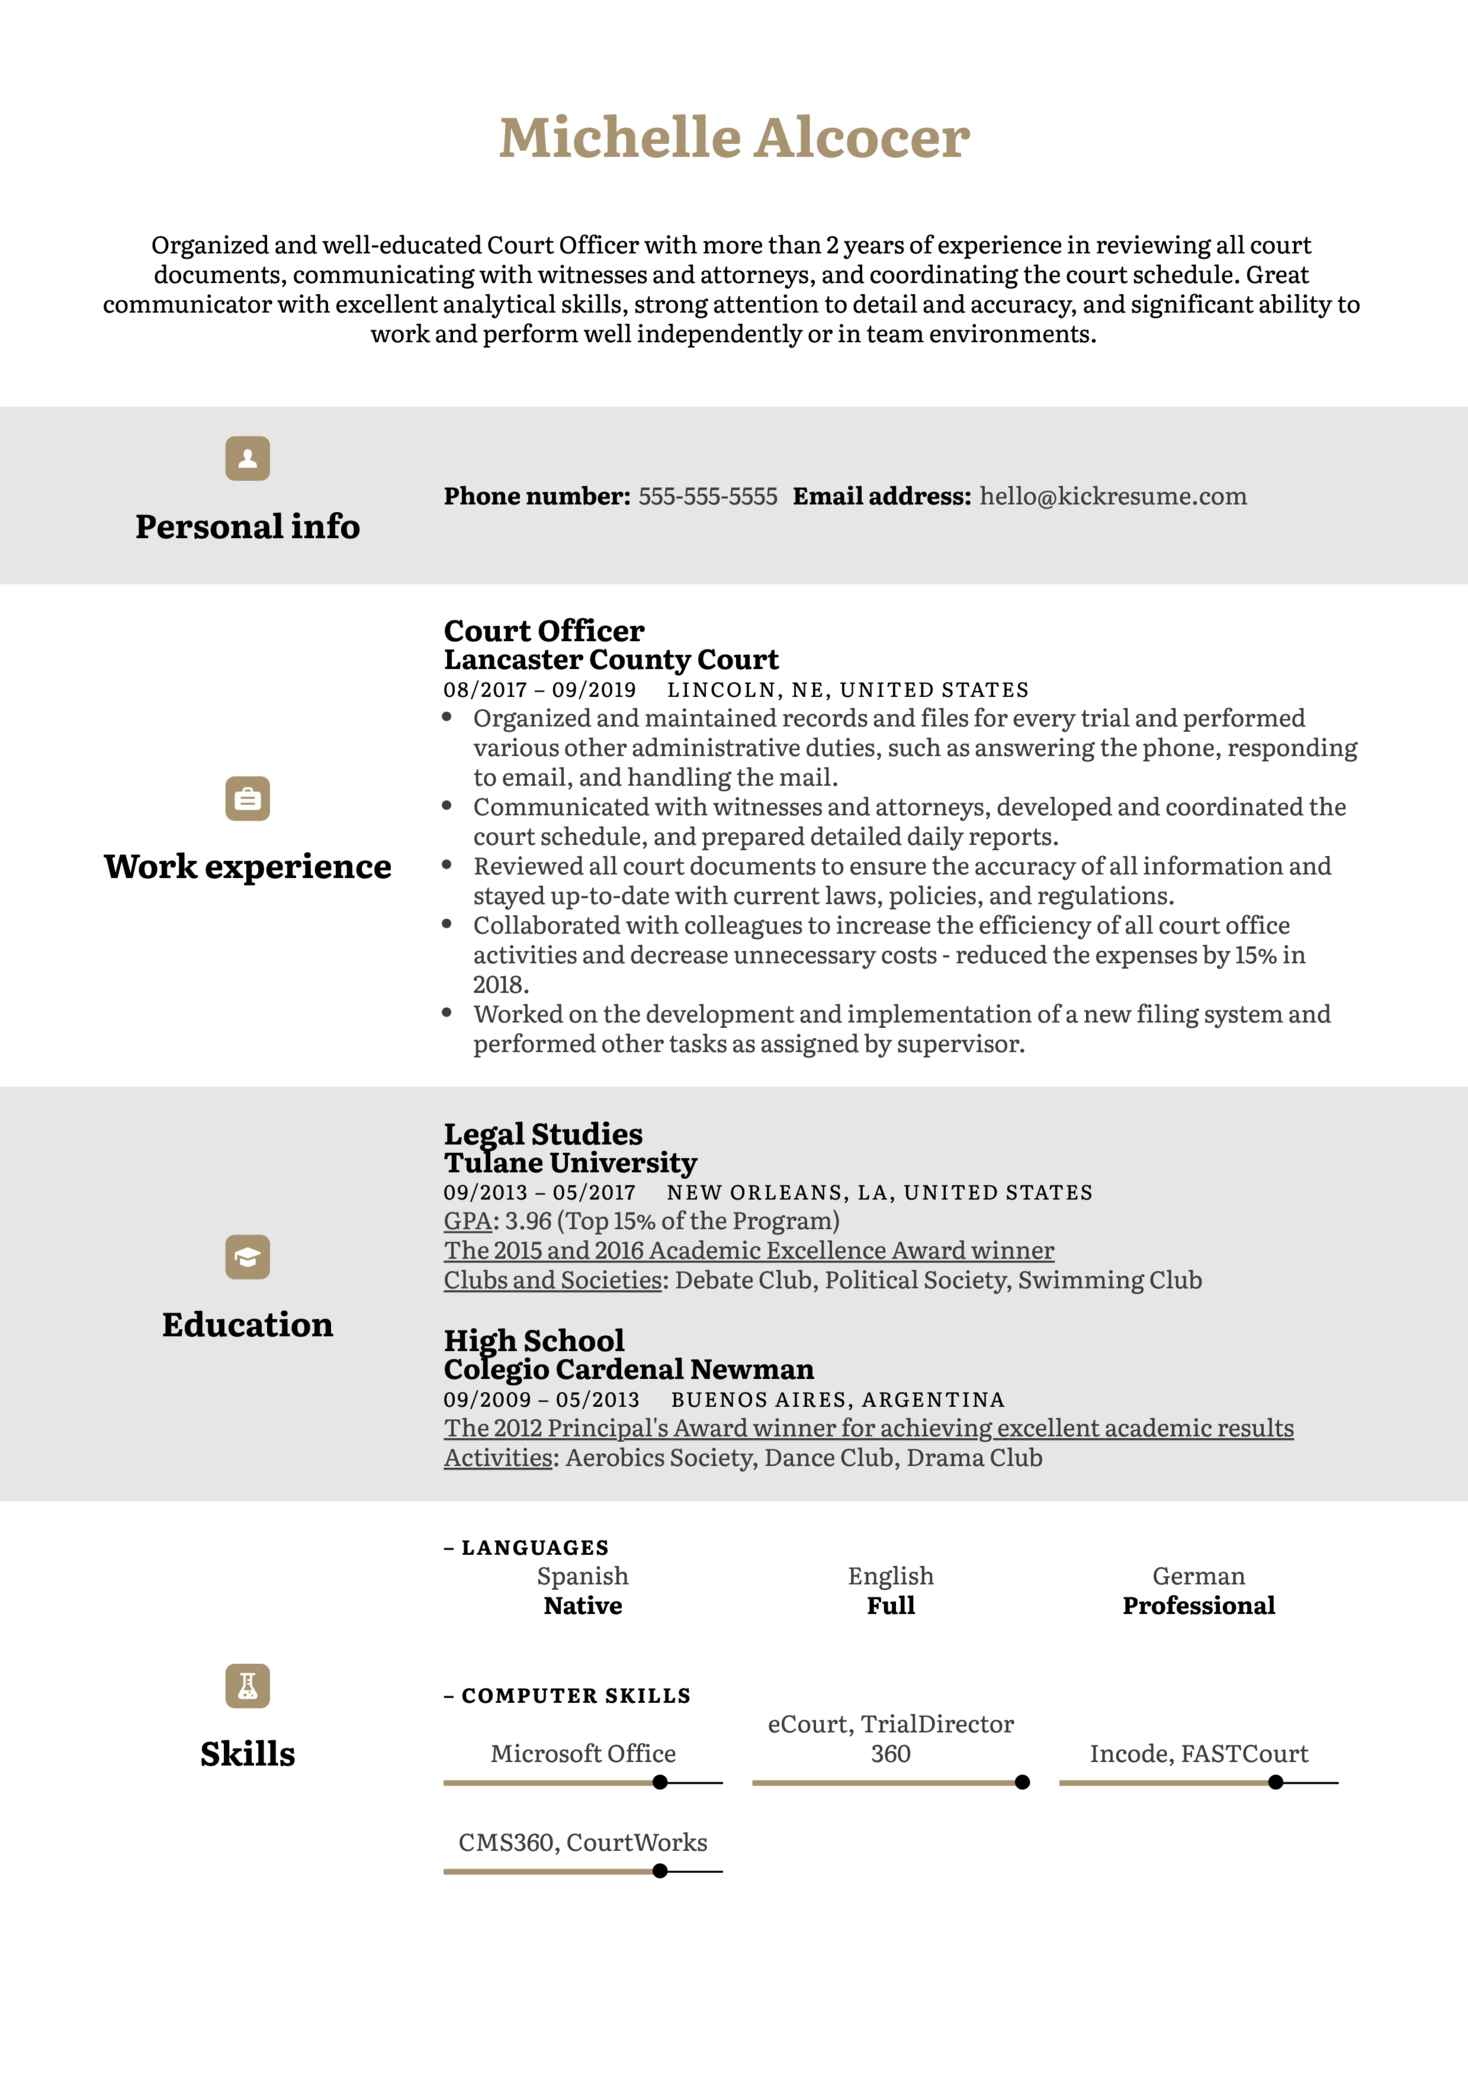 Court Officer Resume Example (Part 1)